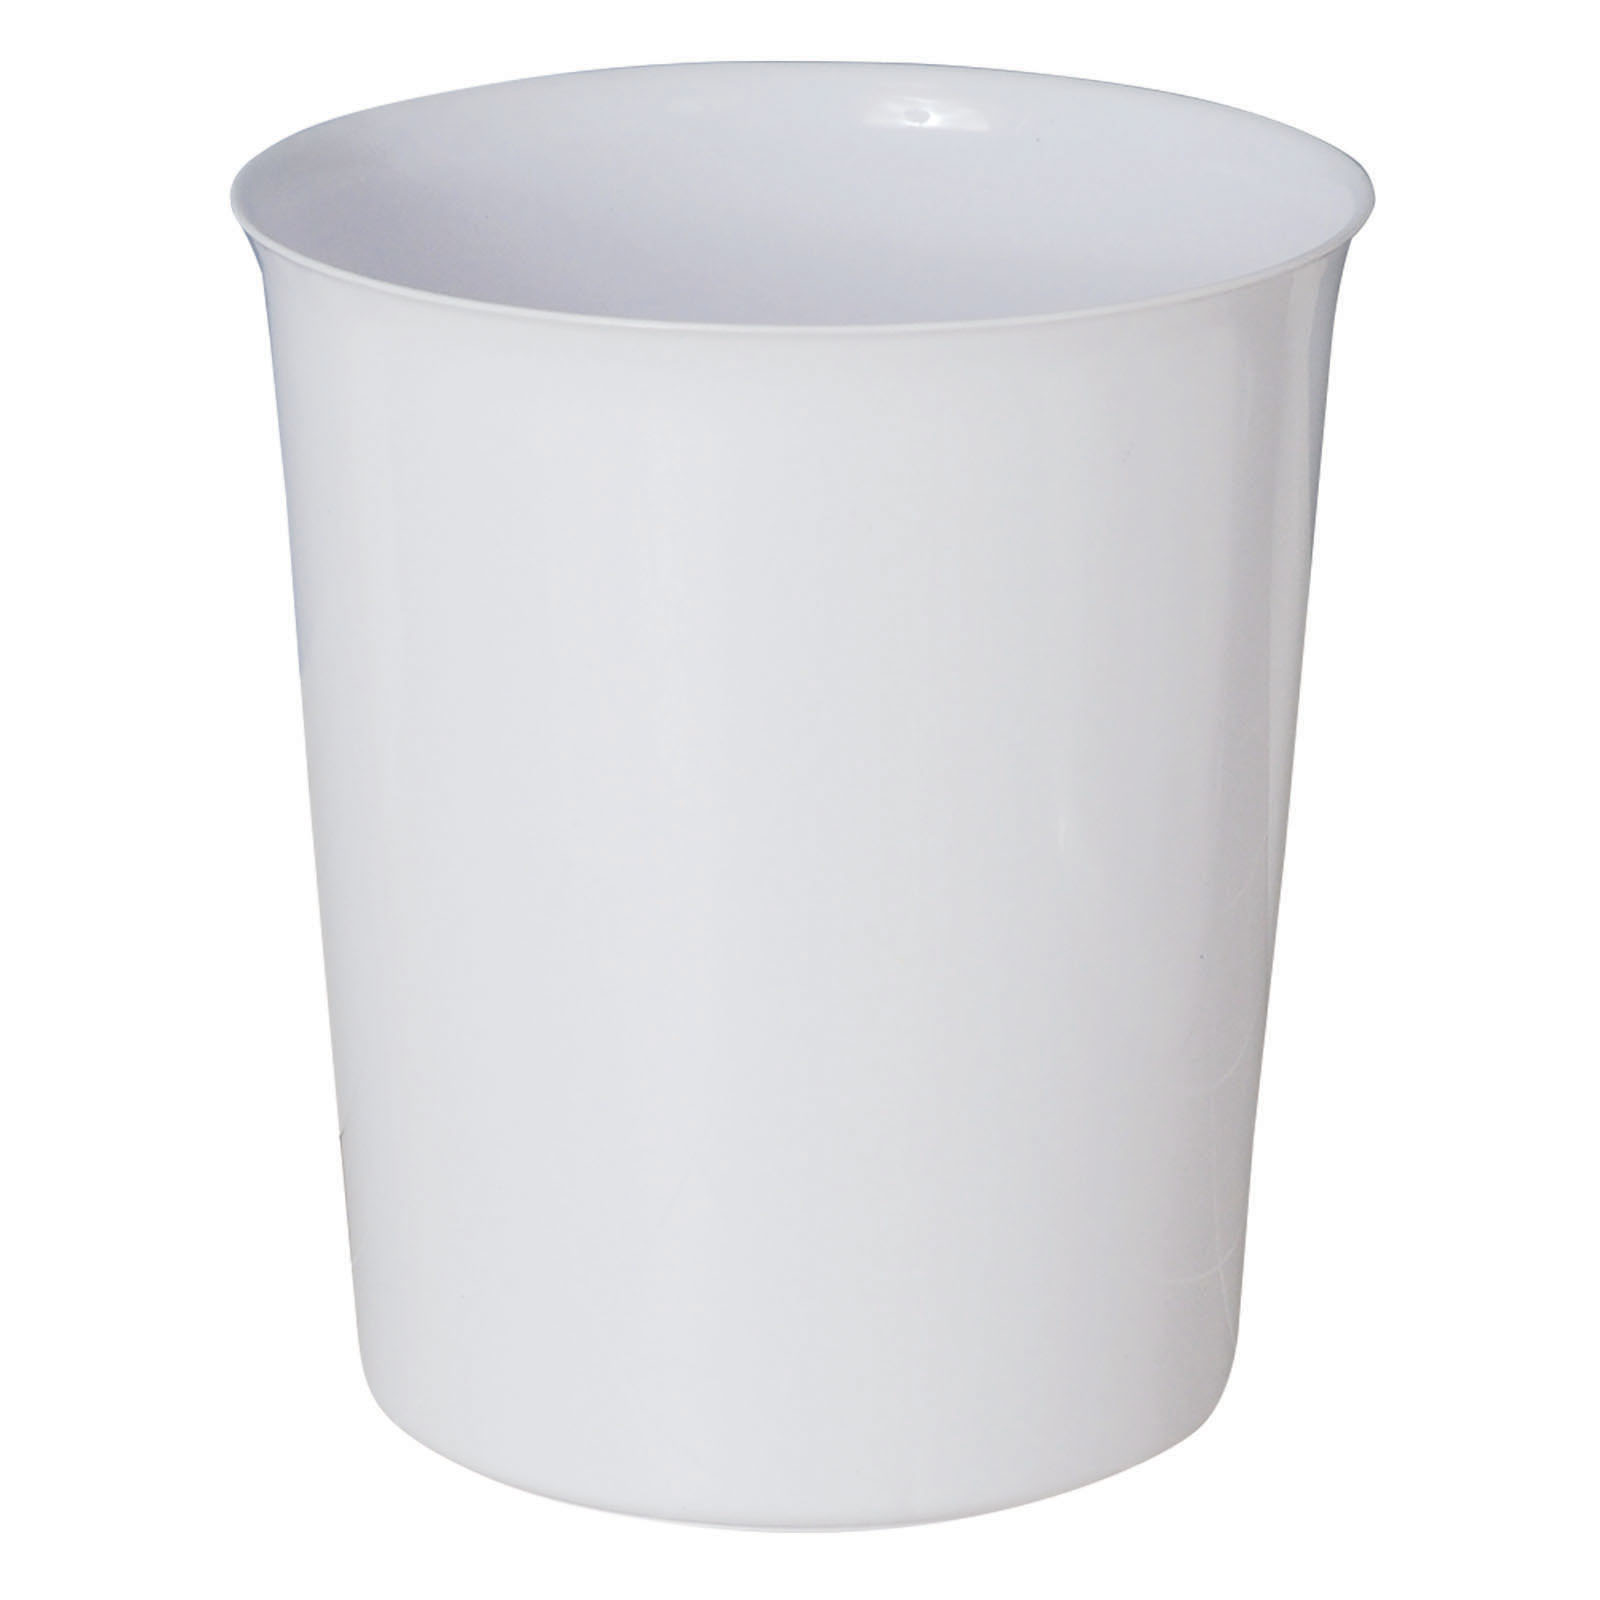 Small Covered Wastebasket